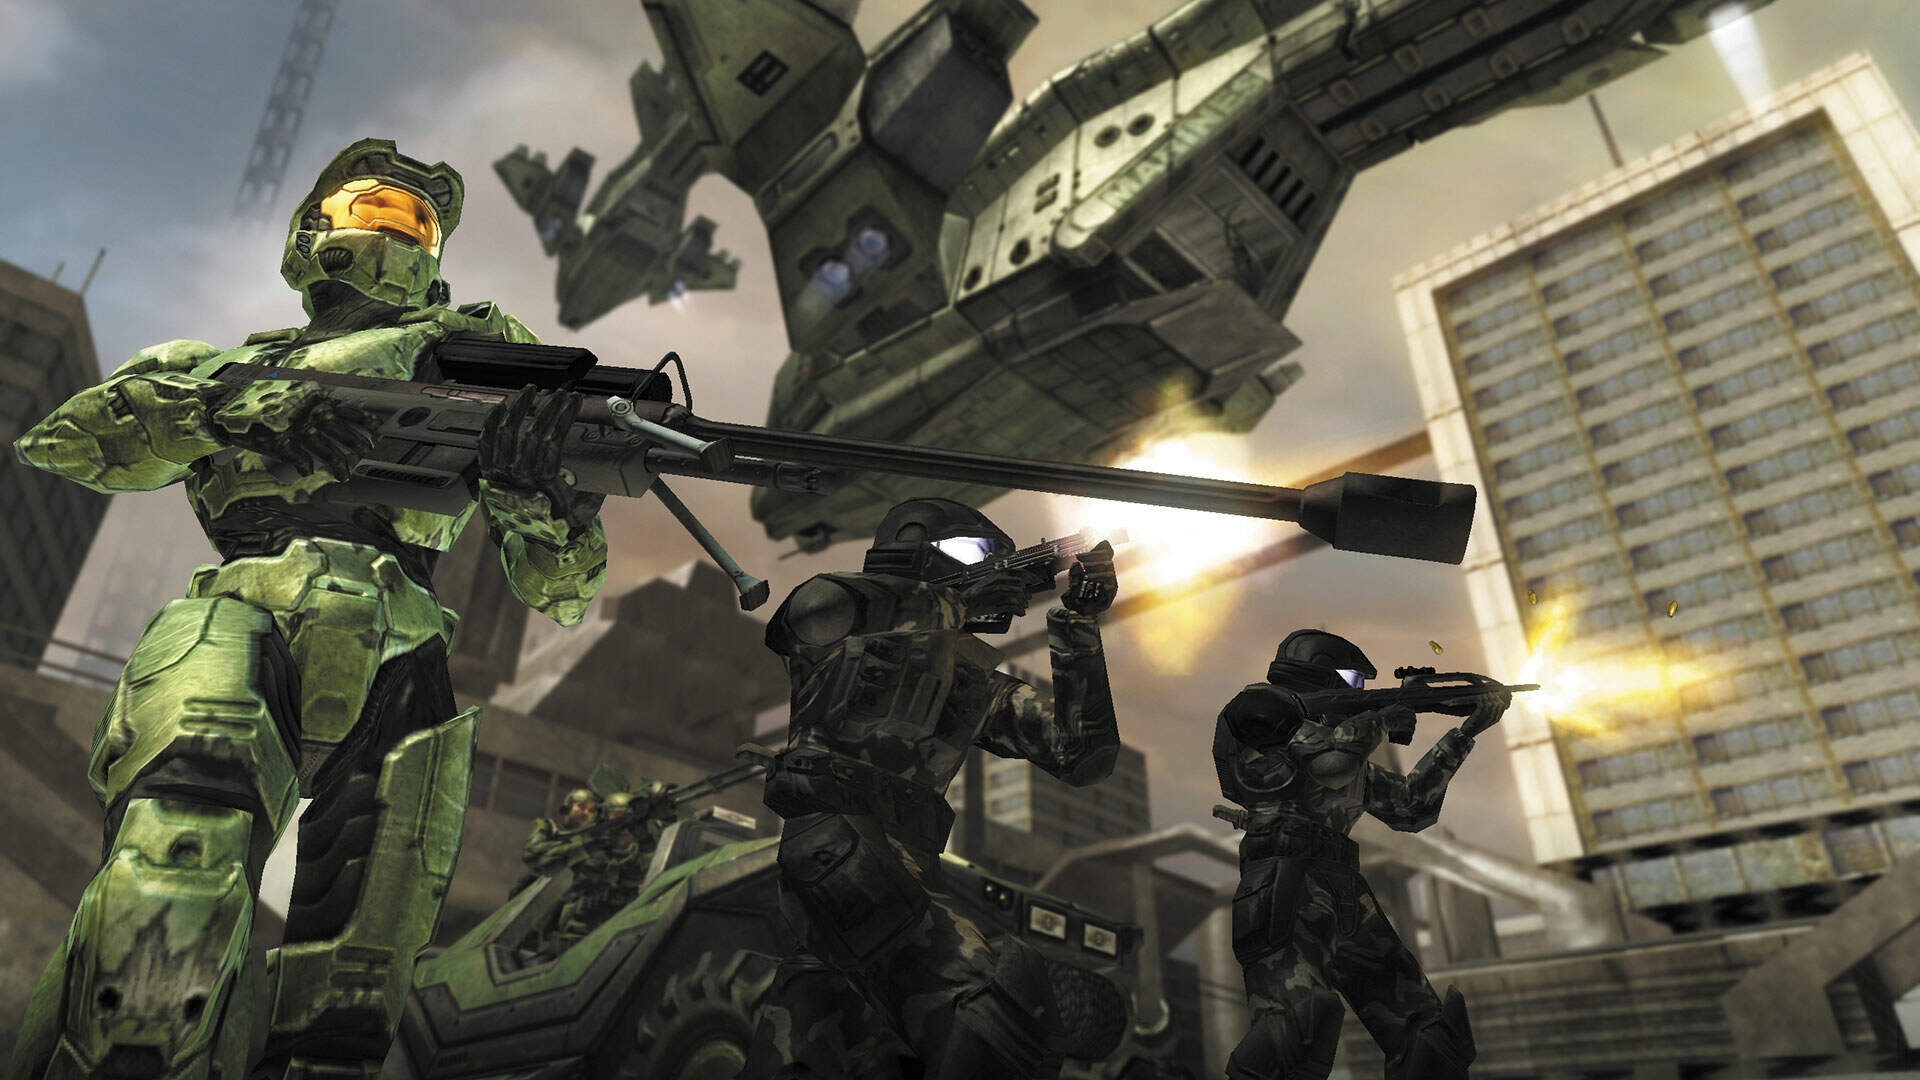 Halo 2: Anniversary May Begin PC Testing as Early as Late March